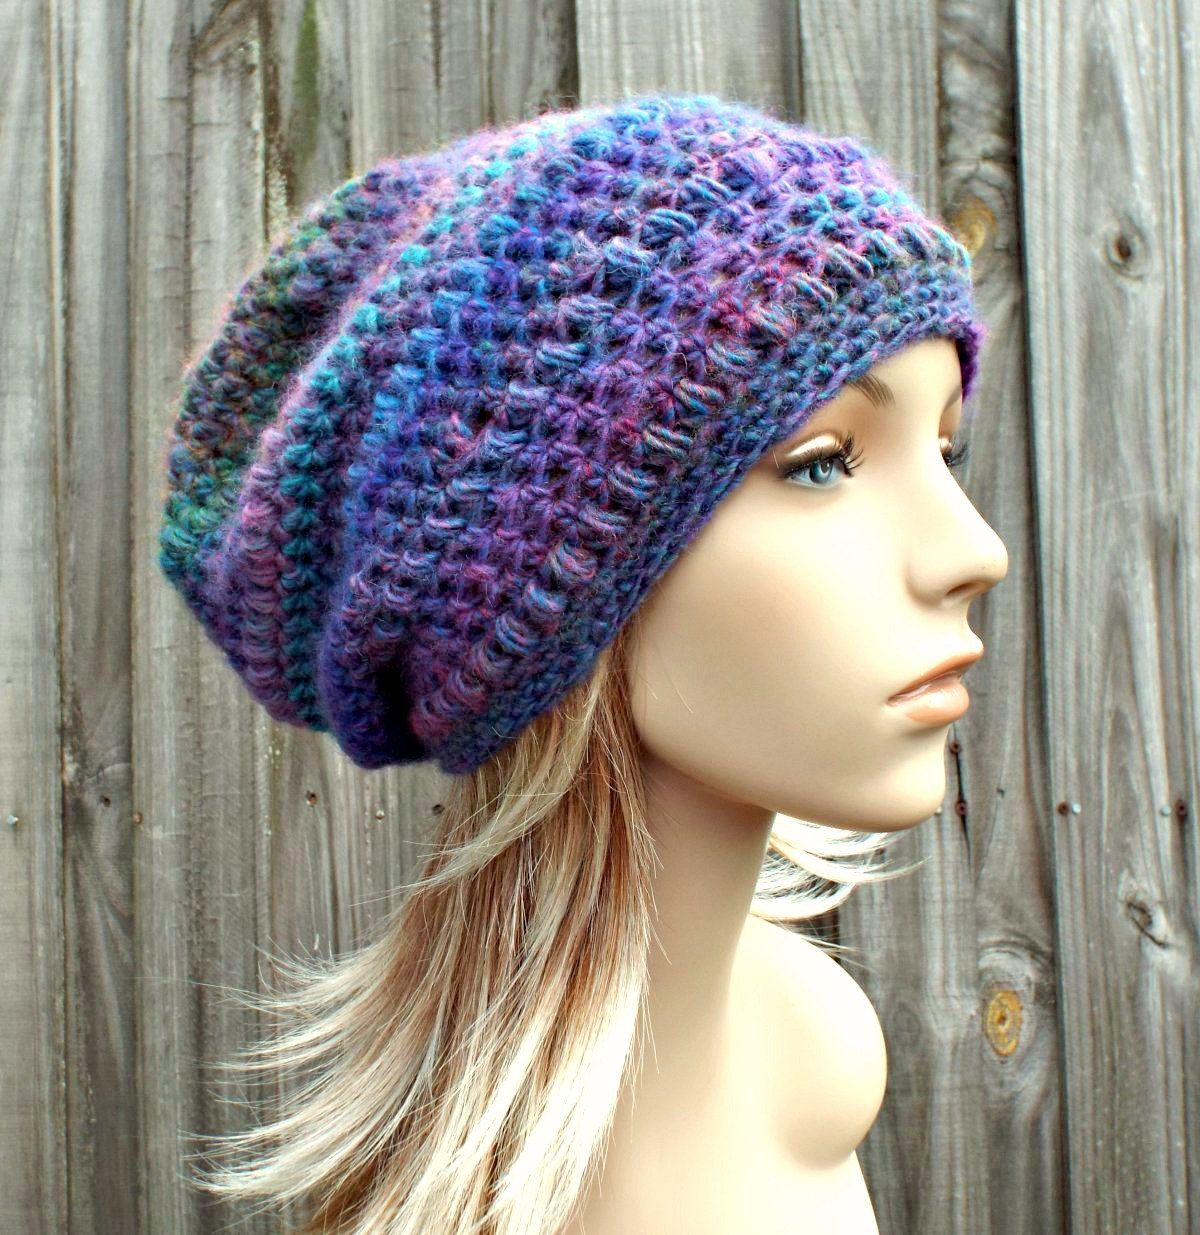 dce527192a0c70 Crochet Hat Womens Hat - Penelope Puff Stitch Slouchy Beanie Hat - Blue  Pink Mauna Loa - Blue Hat Blue Beanie Winter Hat - READY TO SHIP by  pixiebell on ...